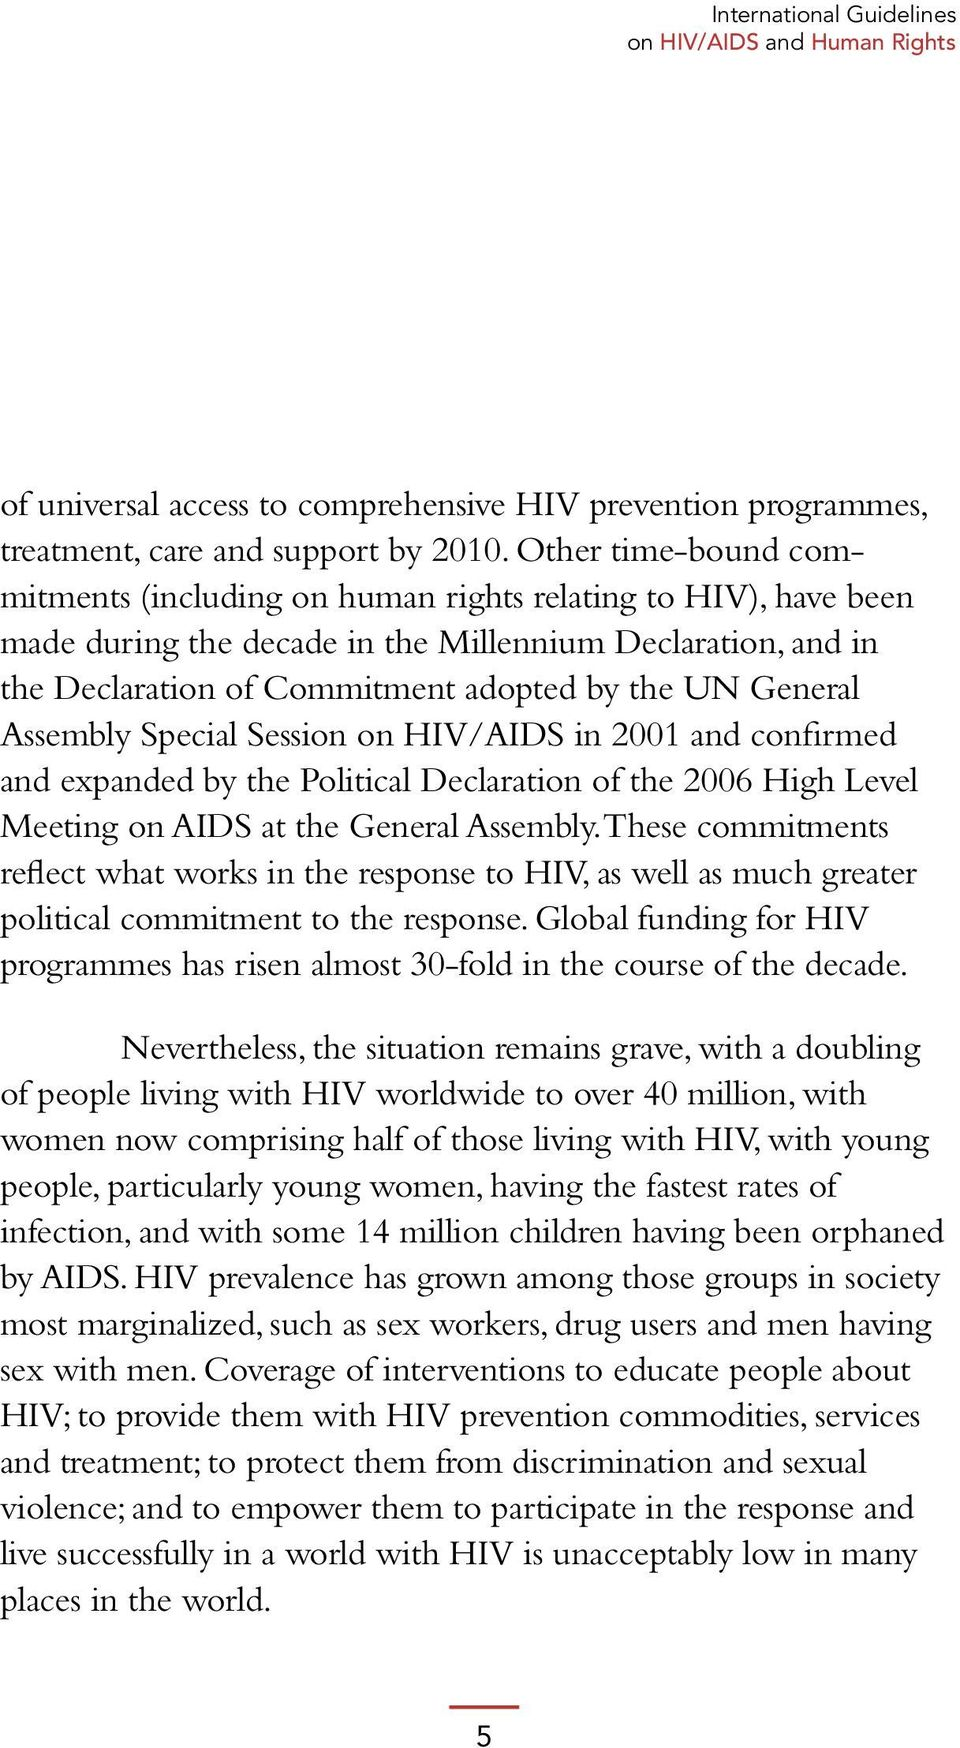 General Assembly Special Session on HIV/AIDS in 2001 and confirmed and expanded by the Political Declaration of the 2006 High Level Meeting on AIDS at the General Assembly.